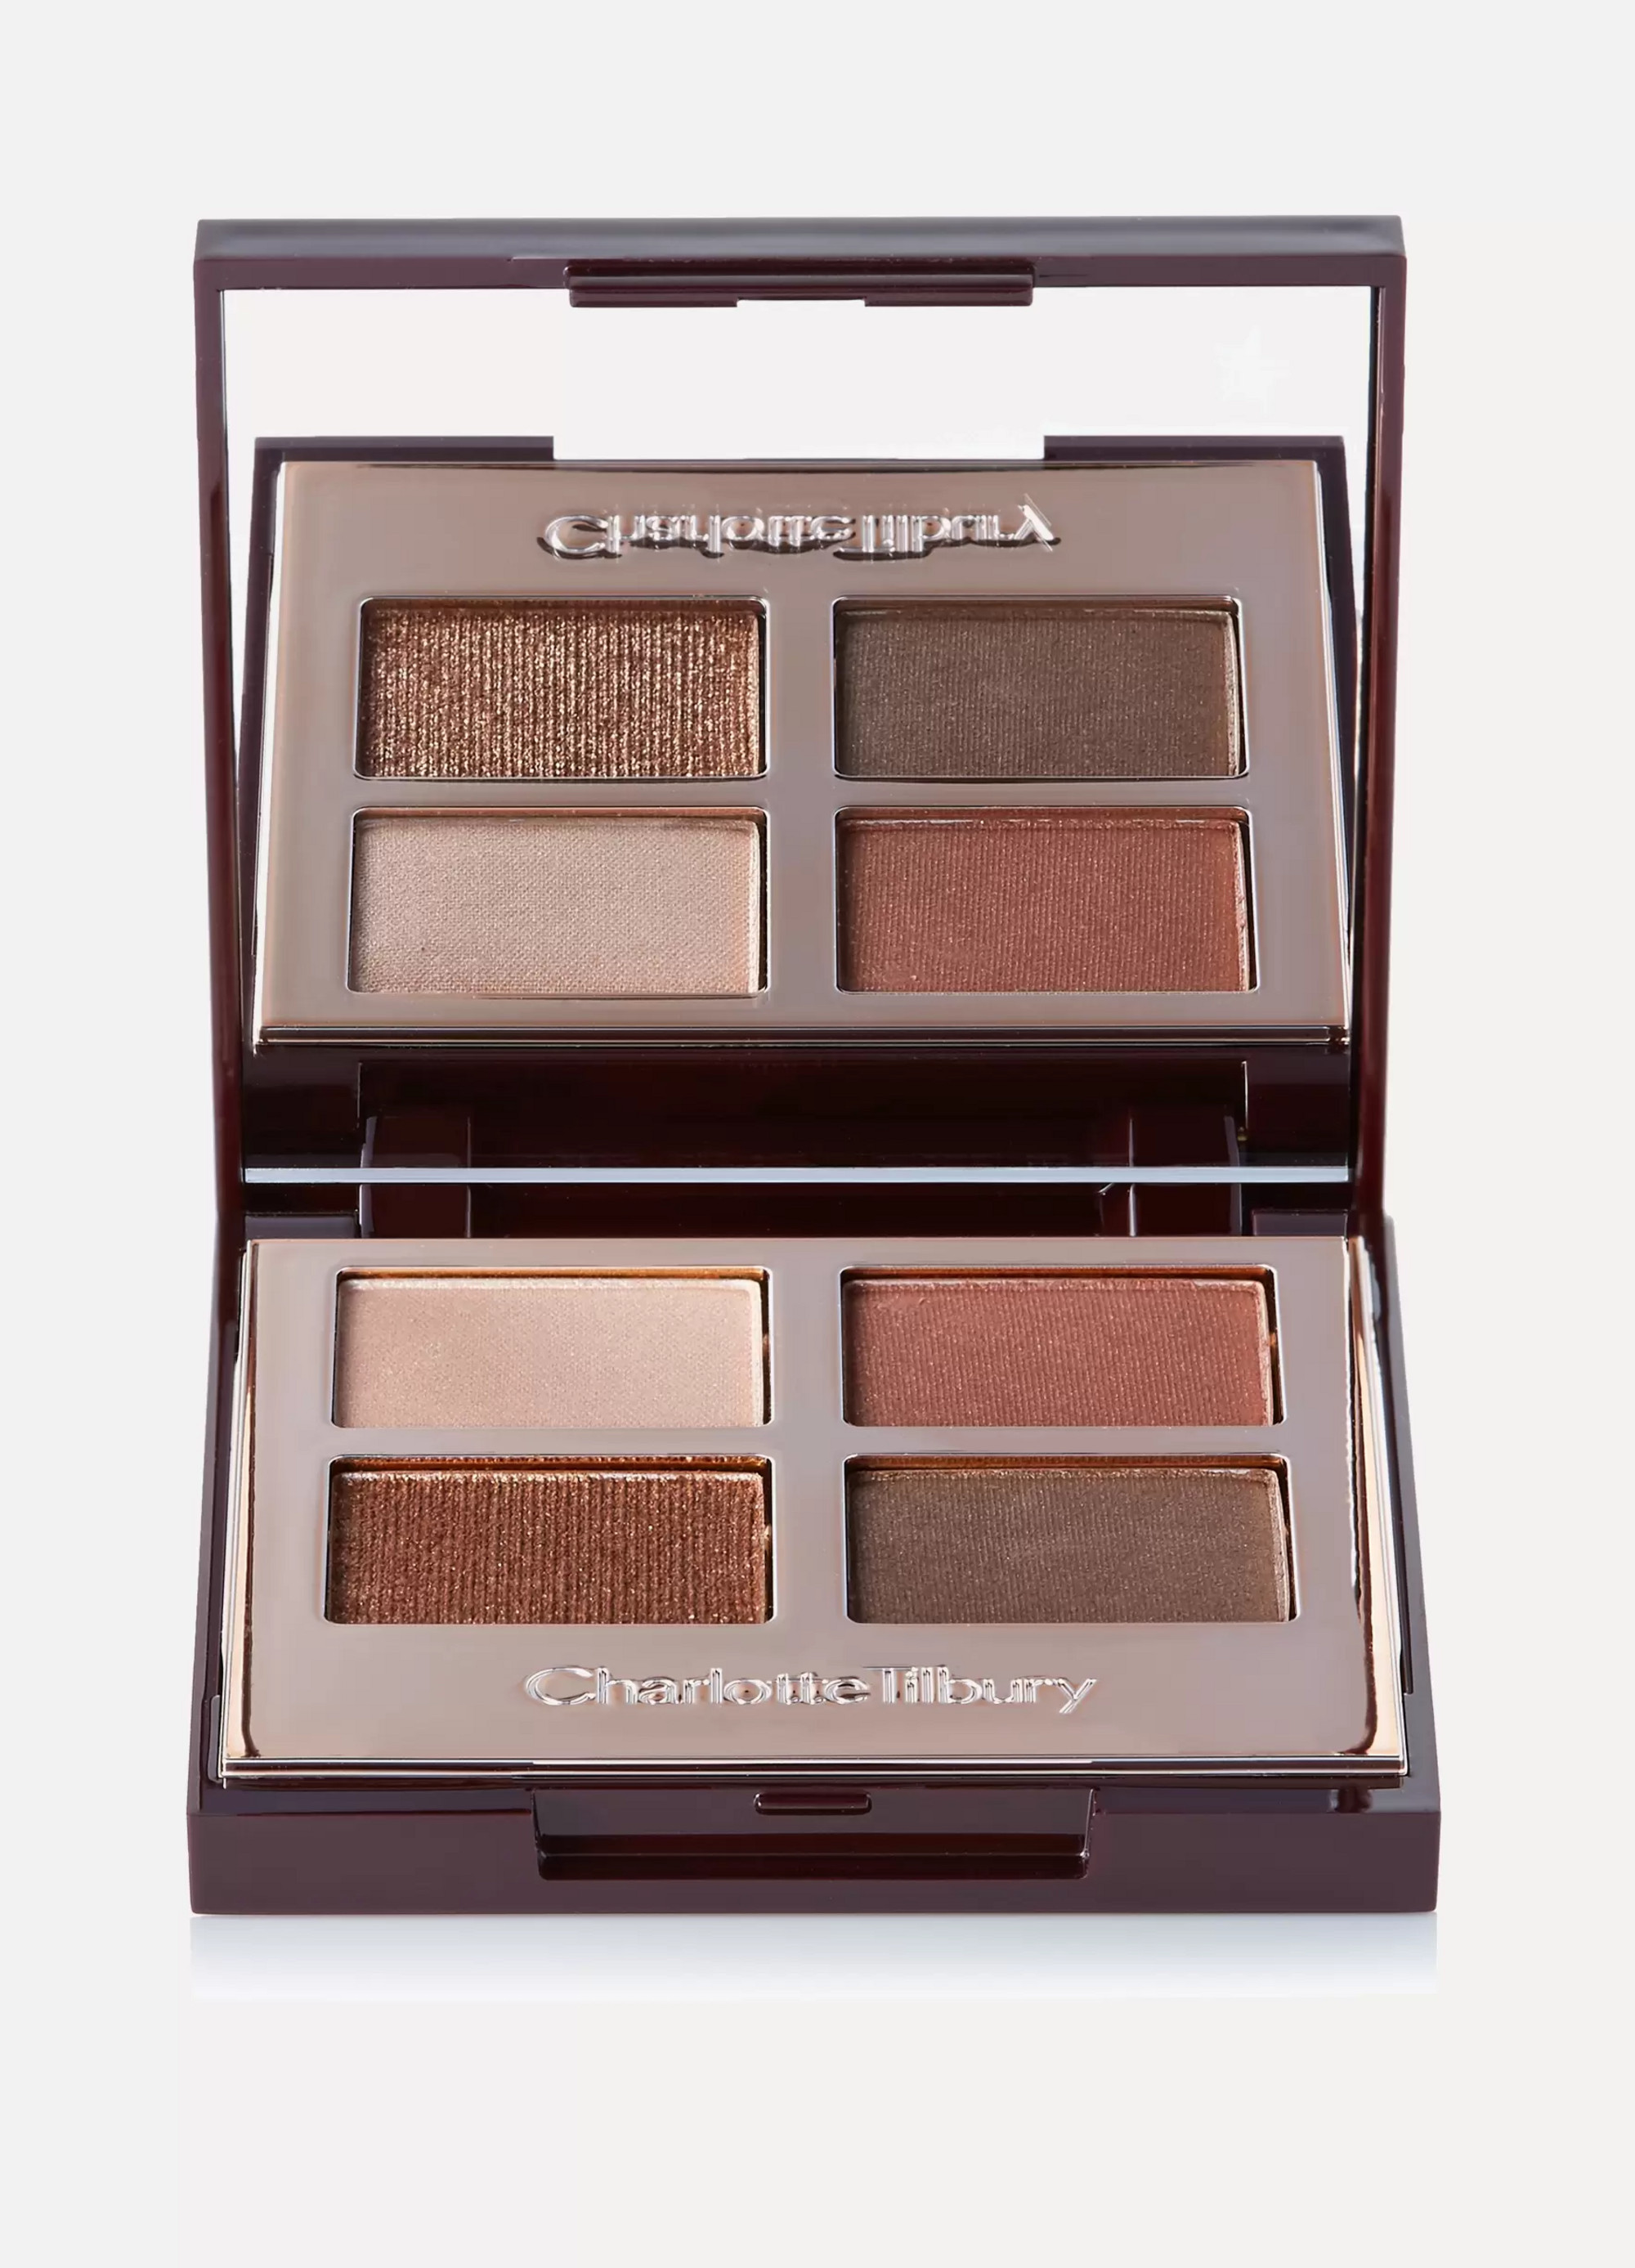 Charlotte Tilbury Luxury Palette Colour Coded Eye Shadow - The Bella Sofia